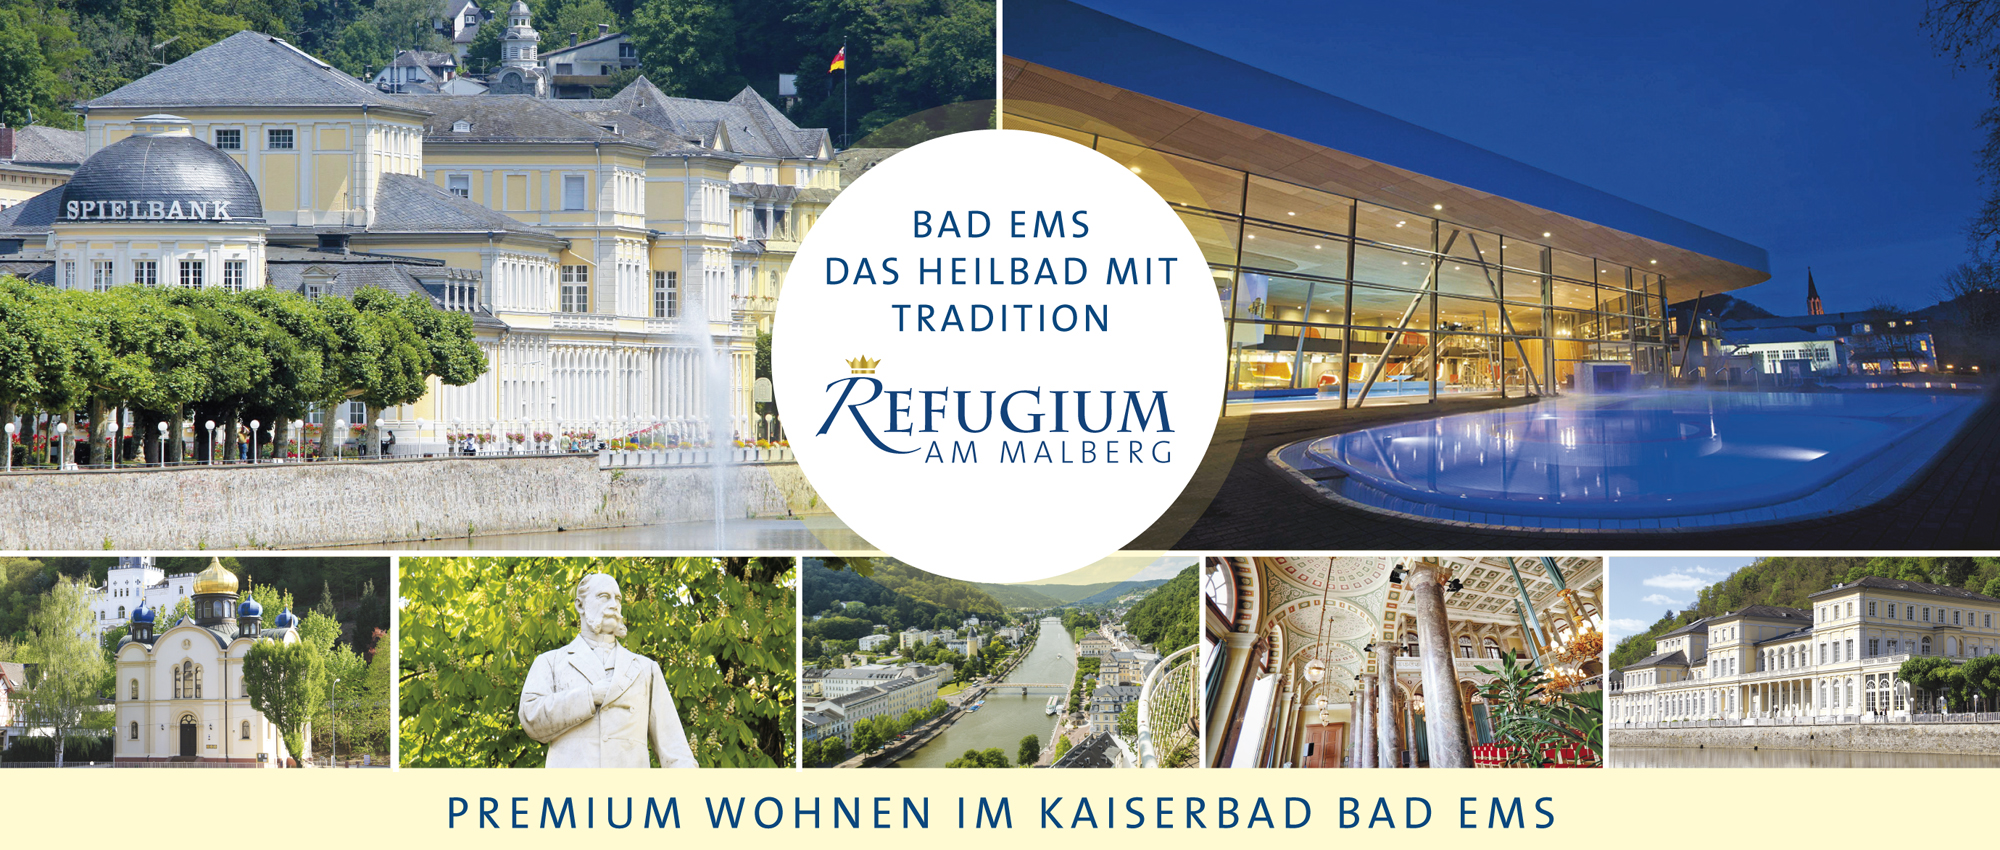 Refugium am Malberg || Bad Ems